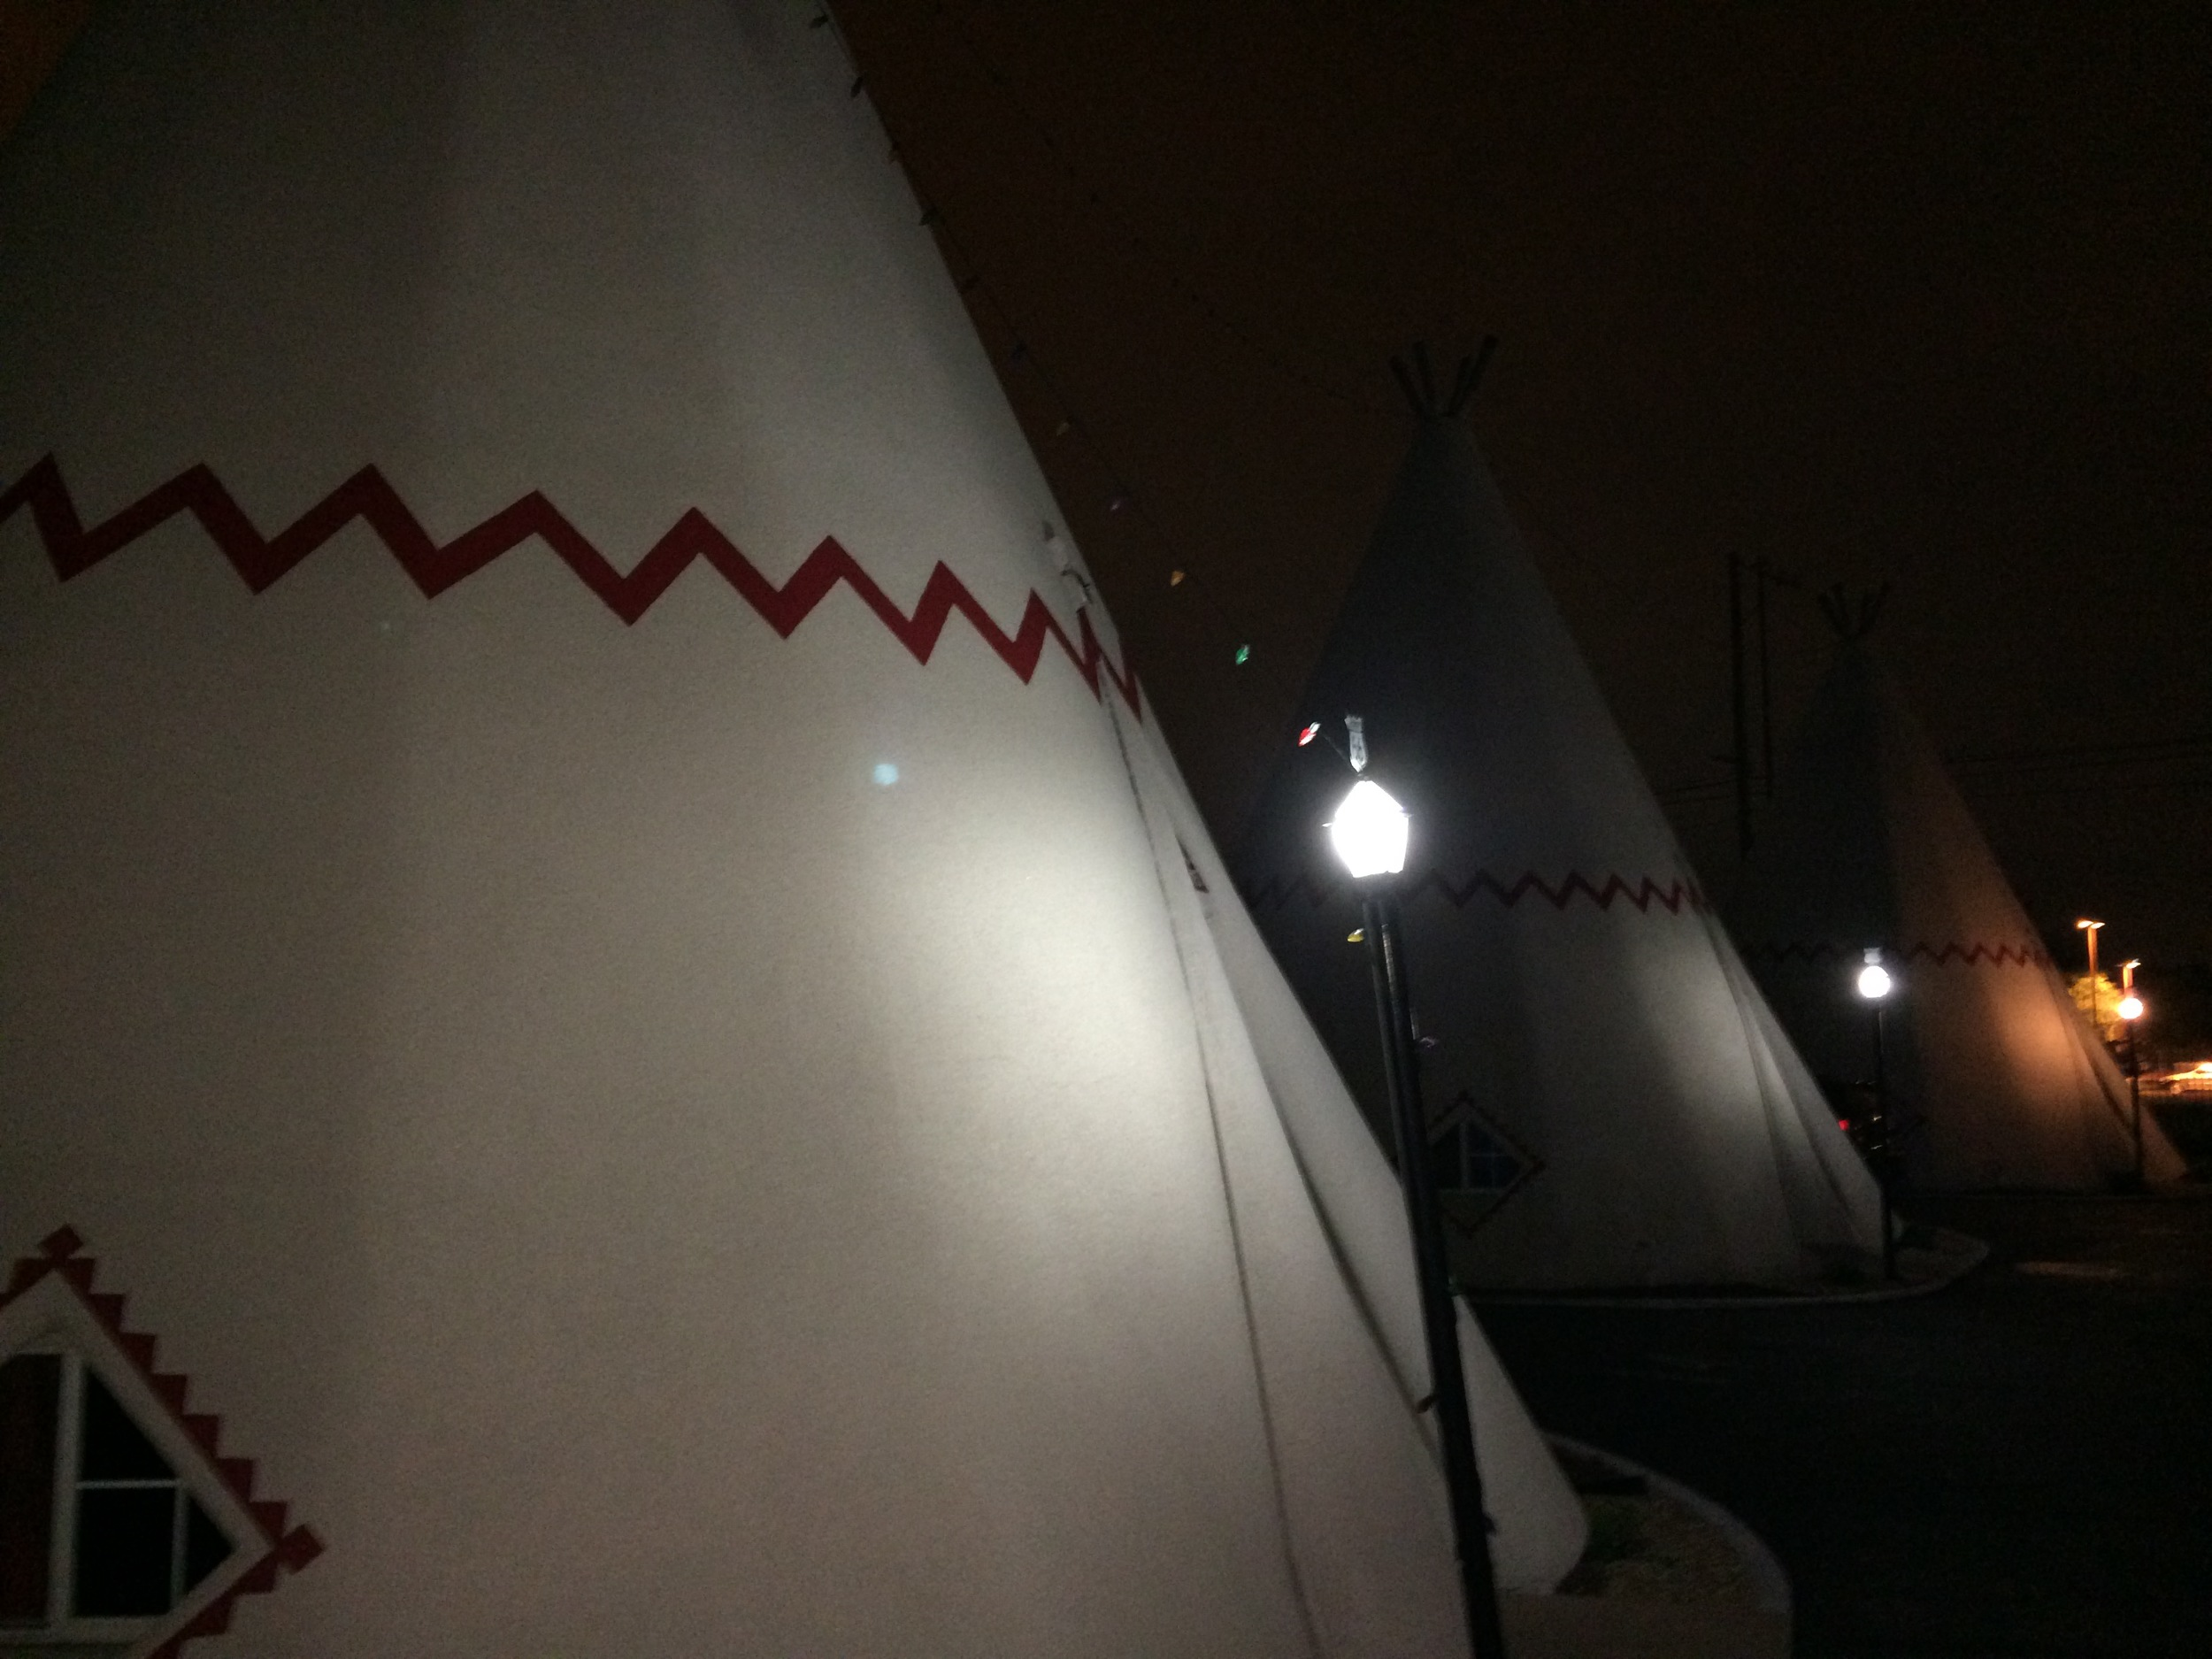 The Wigwam Motel - a classic part of Route 66 History